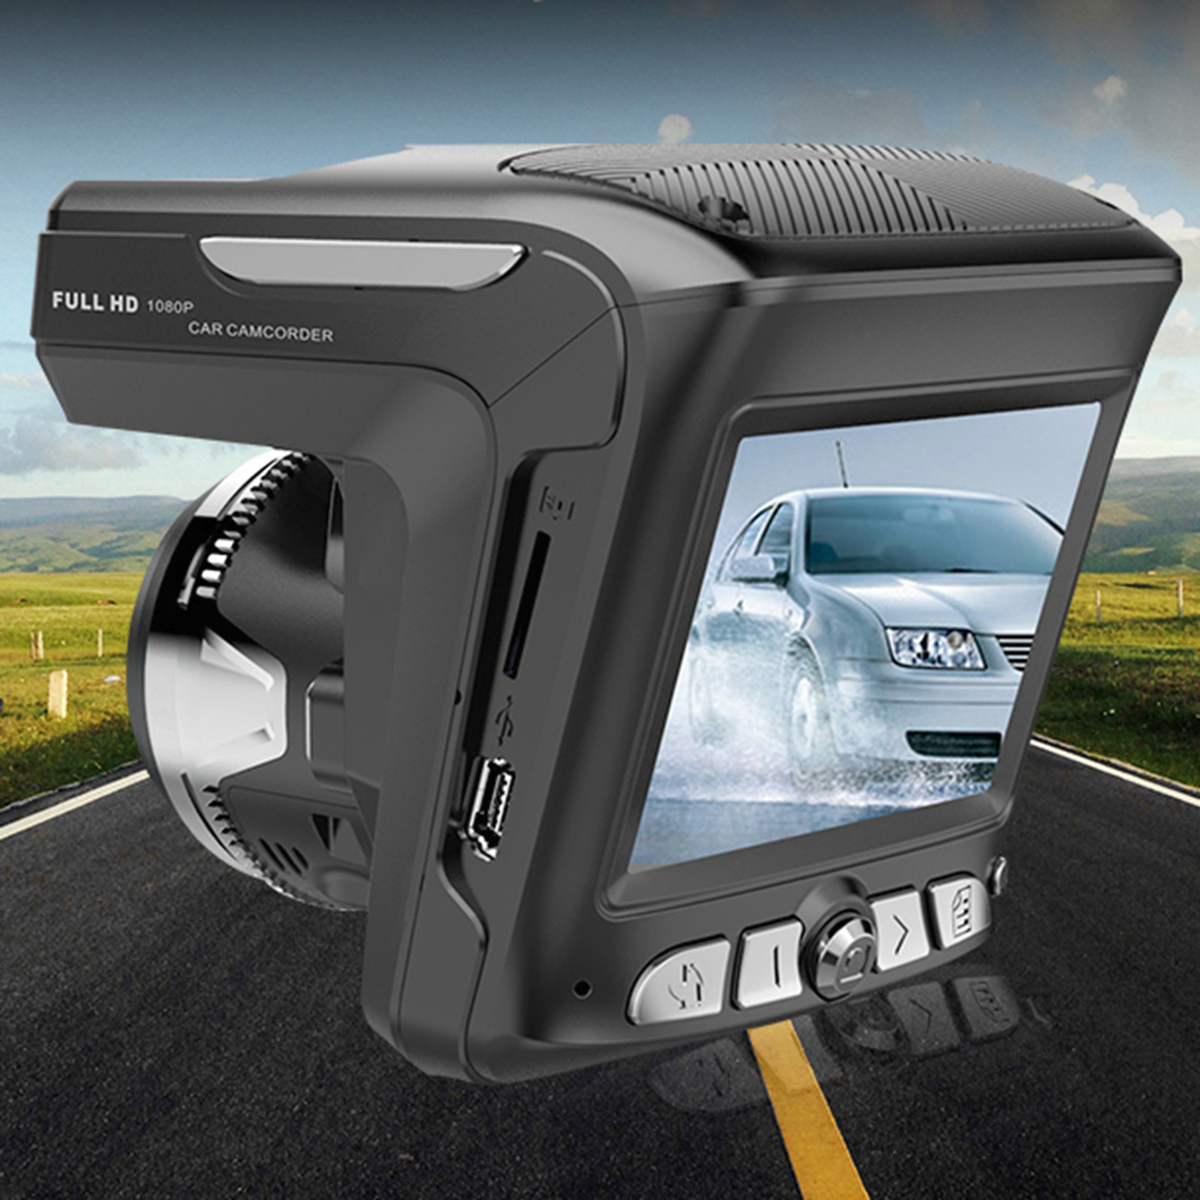 2.4 Inch LCD HD Car DVR Camera IR Night Vision Video Tachograph G-sensor Cam Recorder